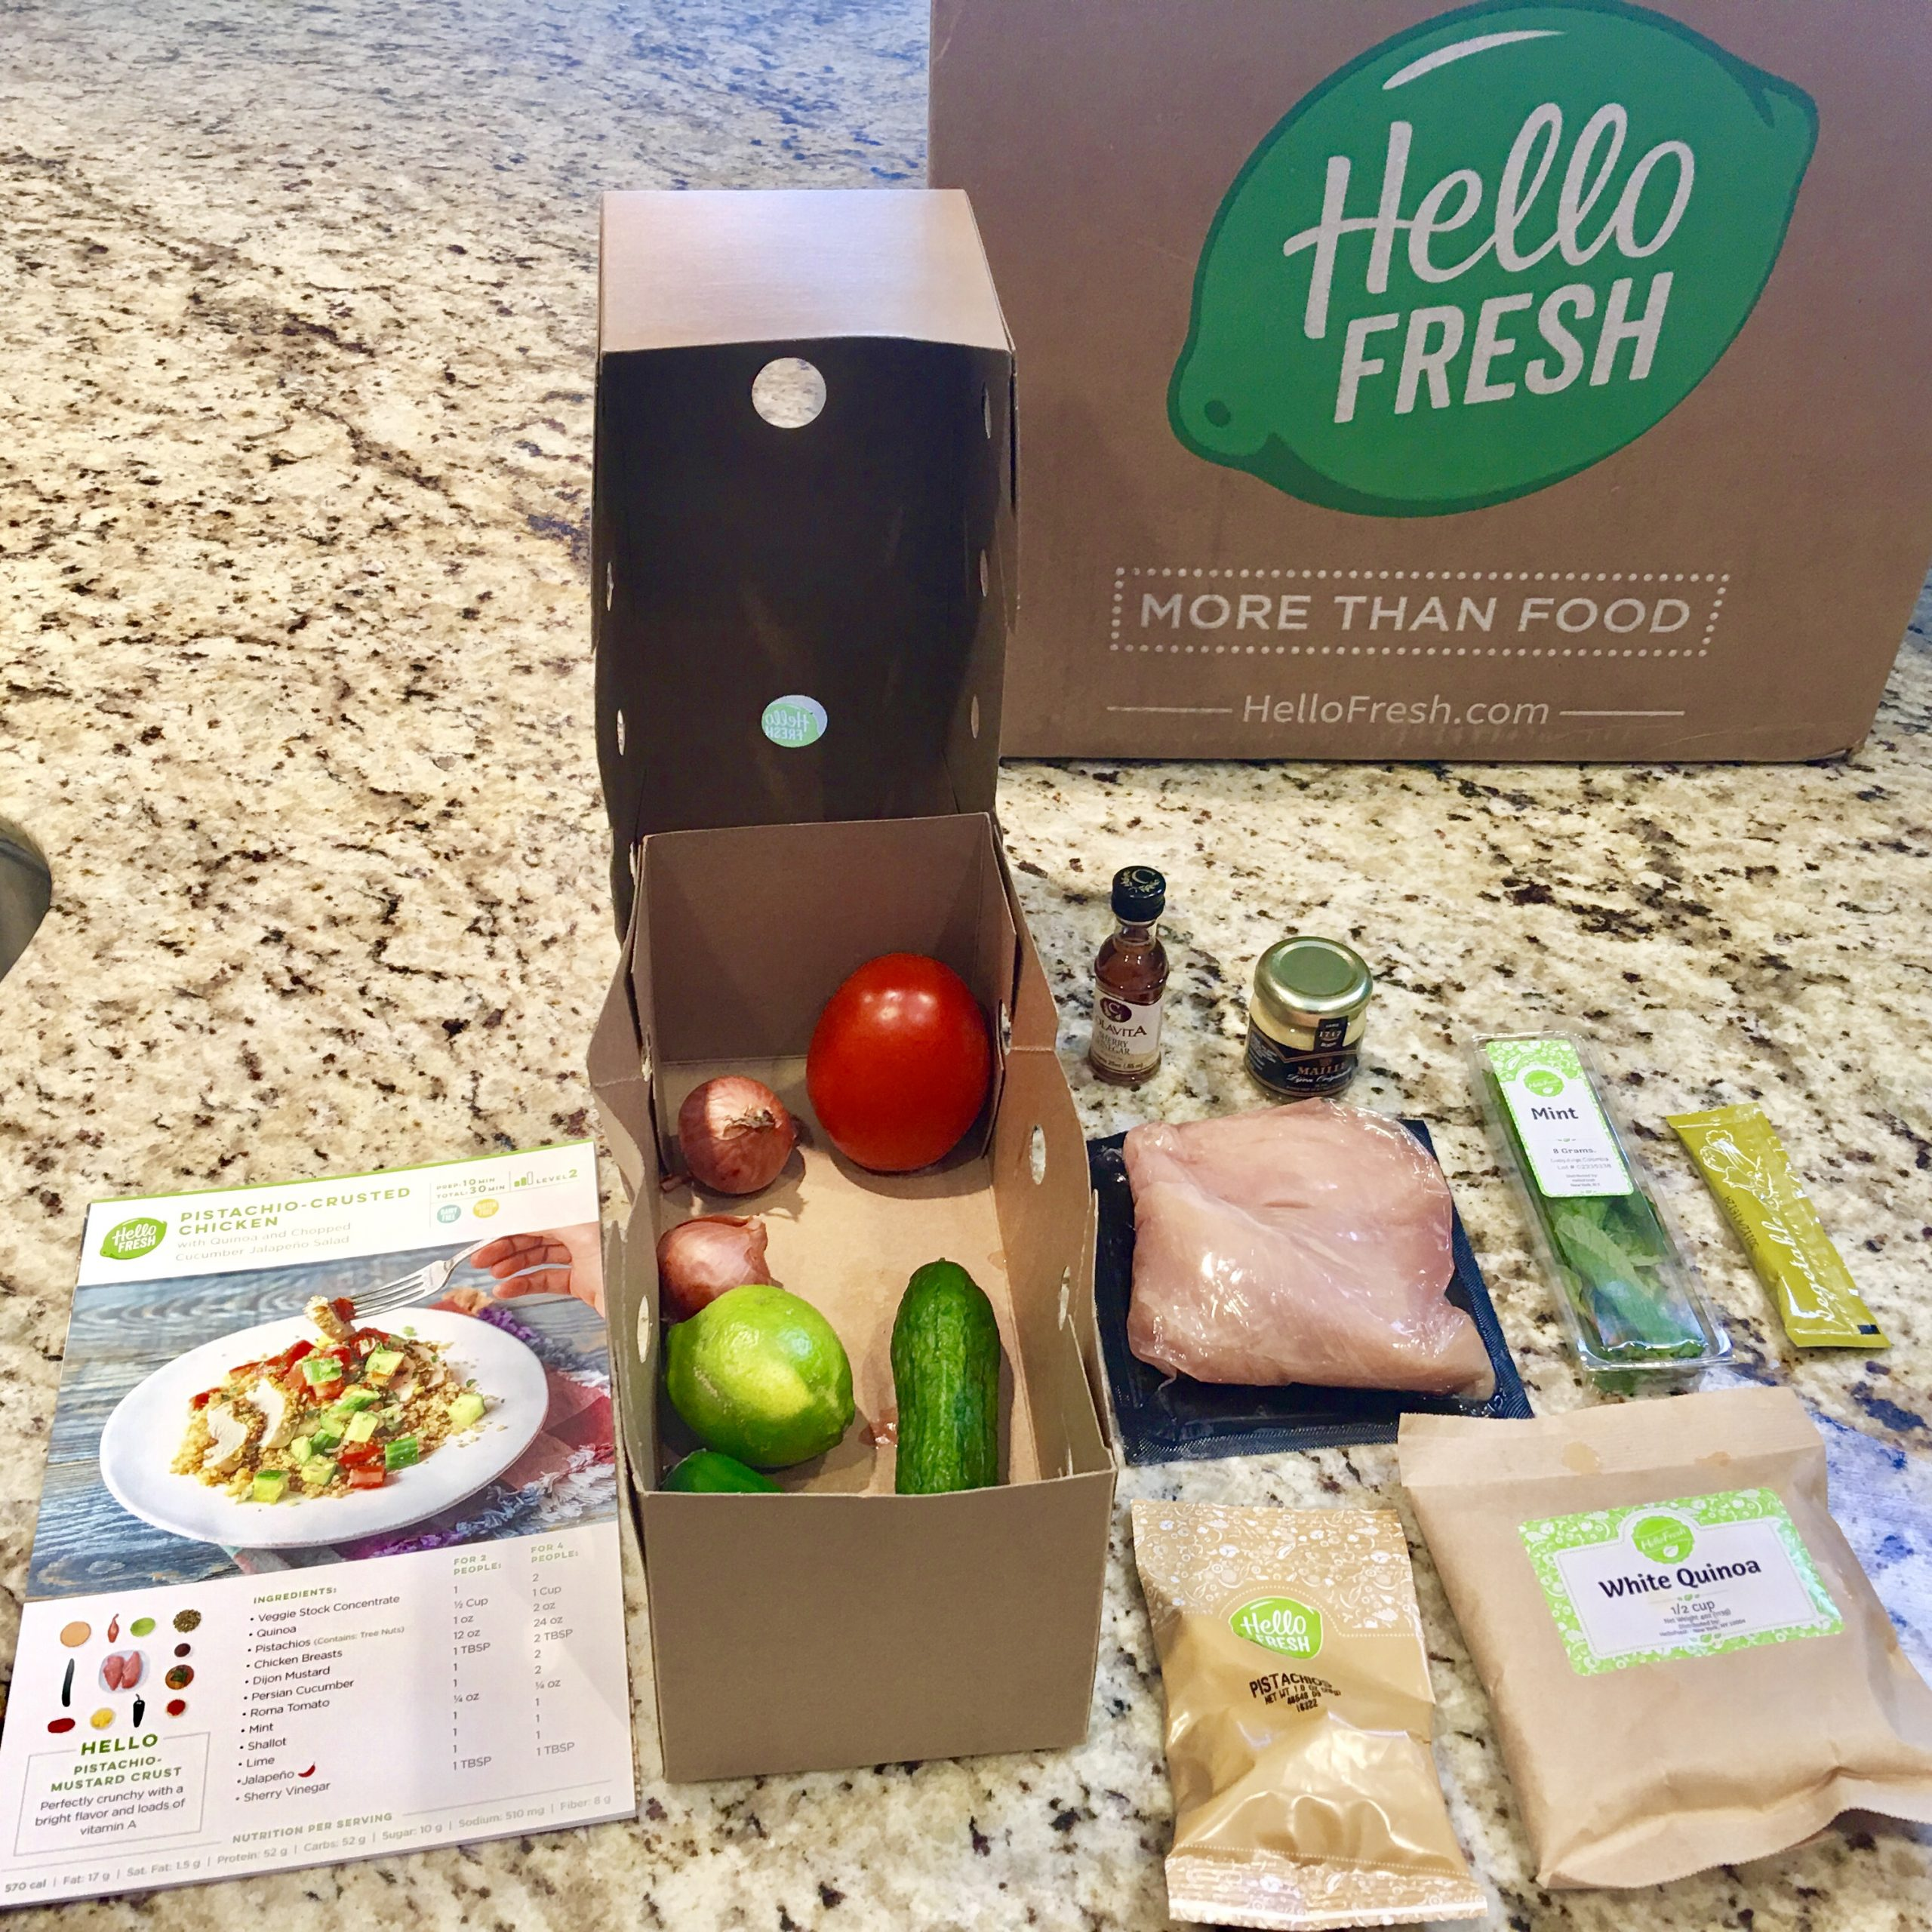 Price For Meal Kit Delivery Service